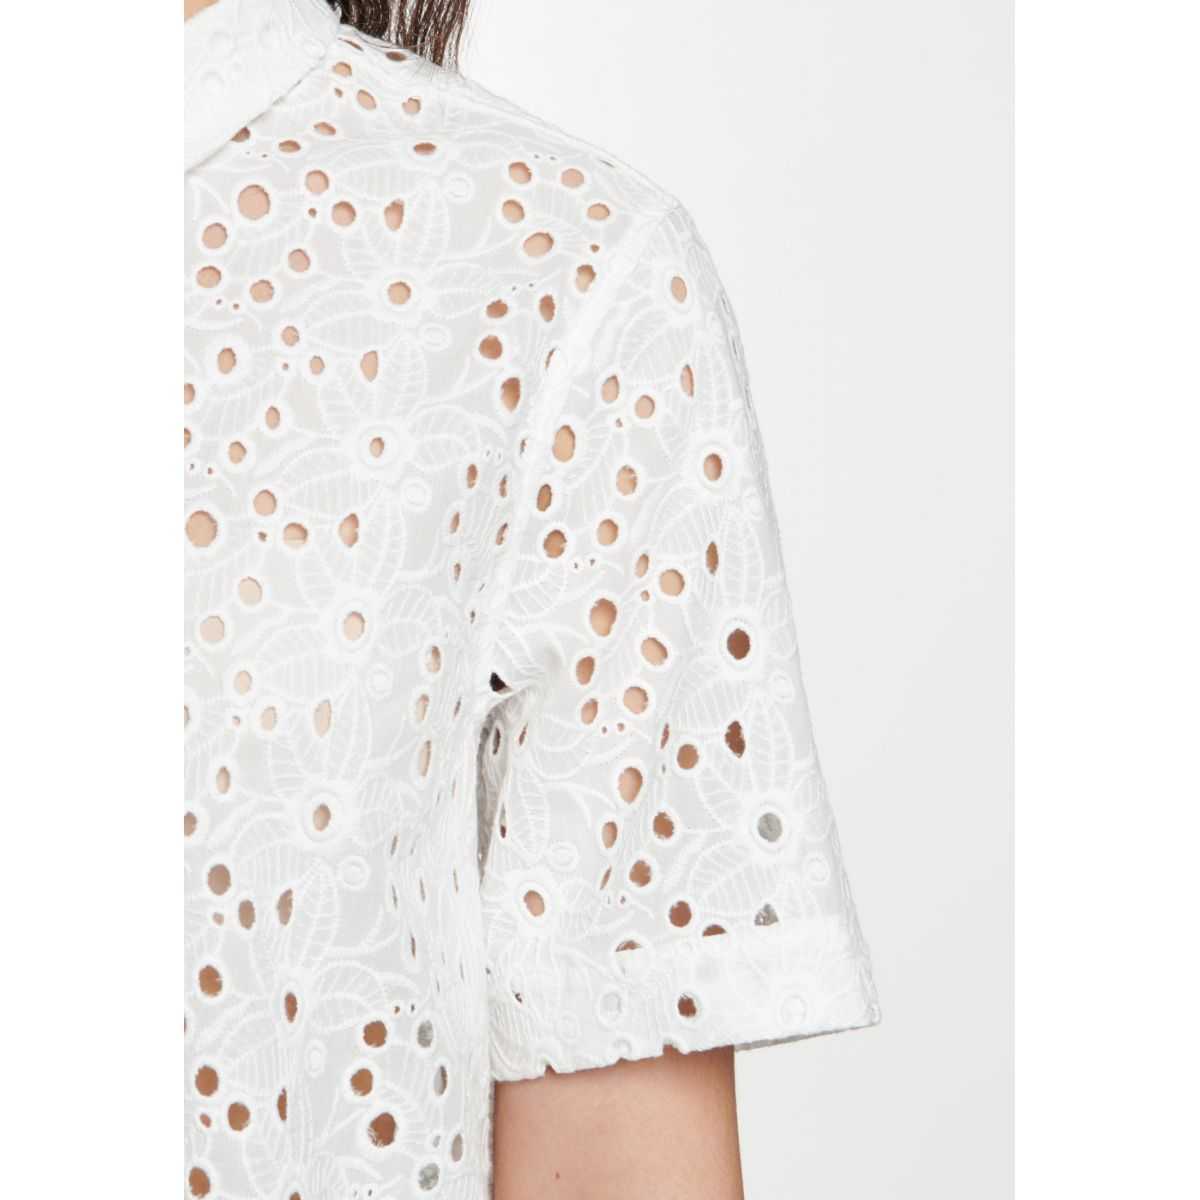 Chemisier blanc broderie anglaise manches courtes